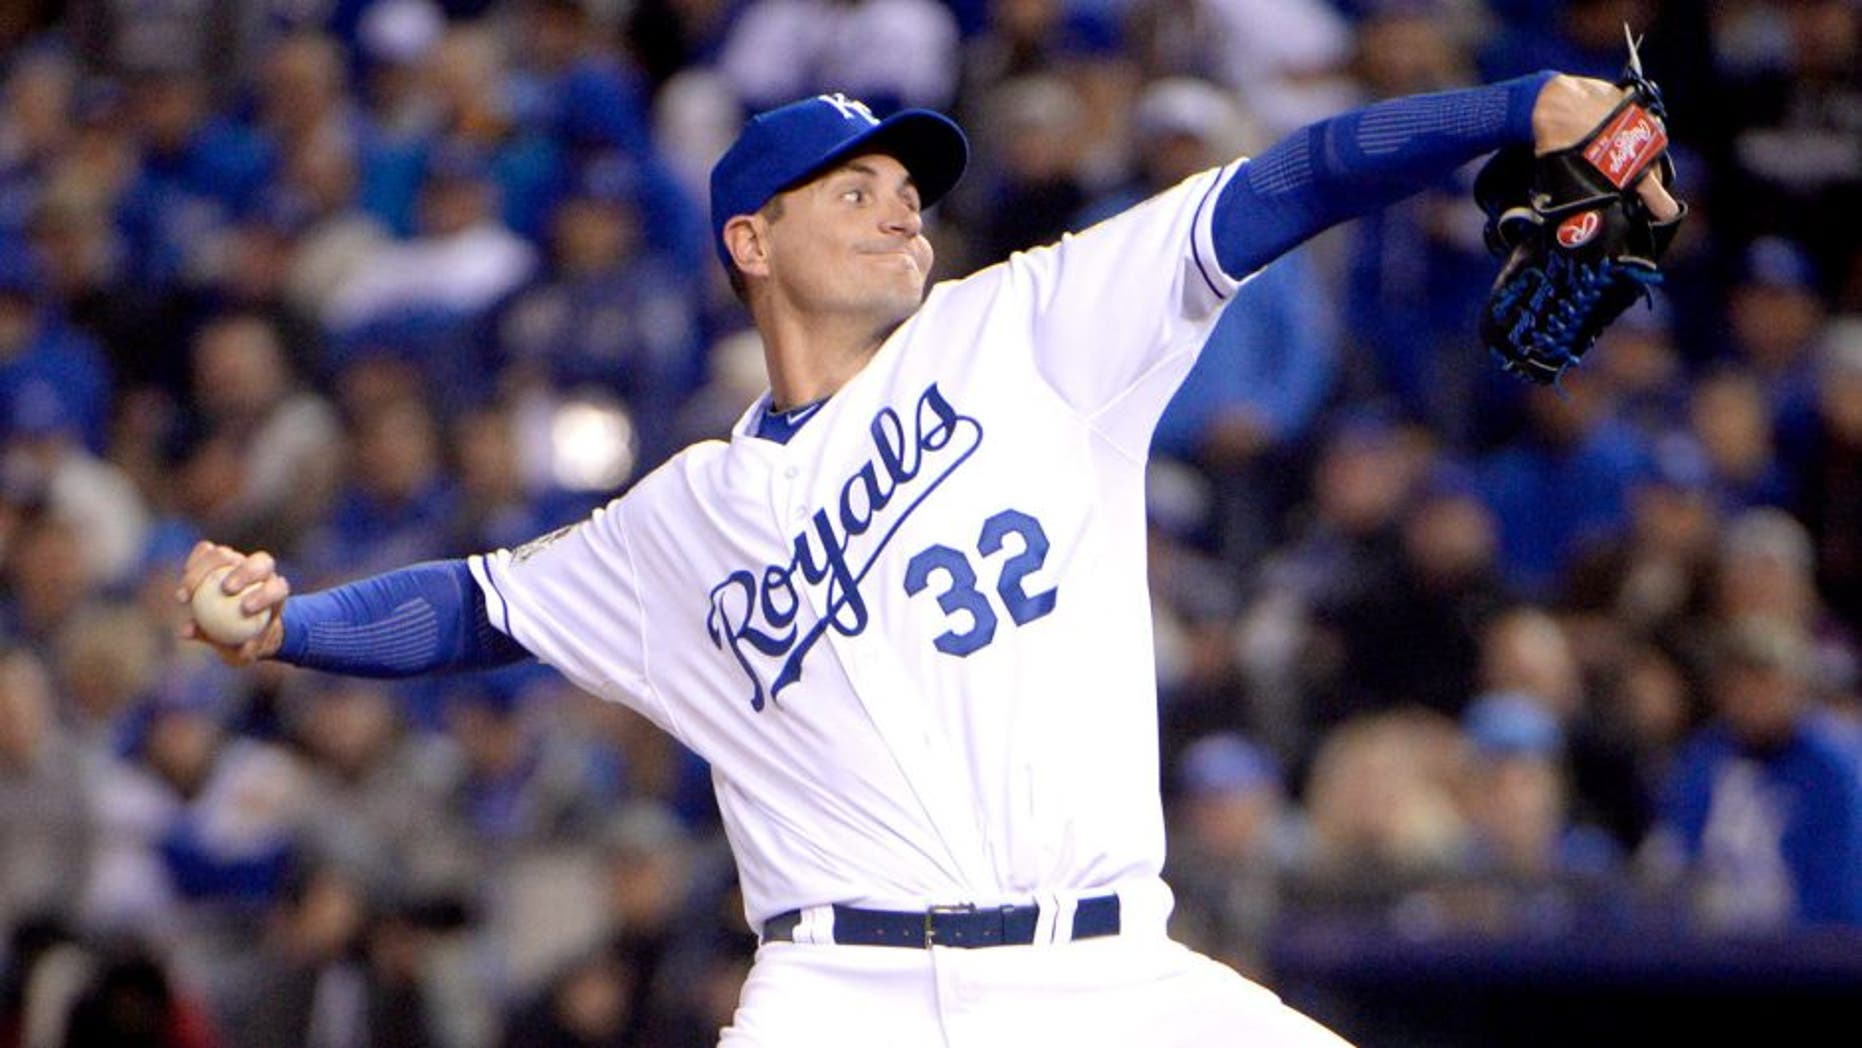 Oct 27, 2015; Kansas City, MO, USA; Kansas City Royals pitcher Chris Young (32) throws a pitch against the New York Mets in the 12th inning in game one of the 2015 World Series at Kauffman Stadium. Mandatory Credit: John Rieger-USA TODAY Sports